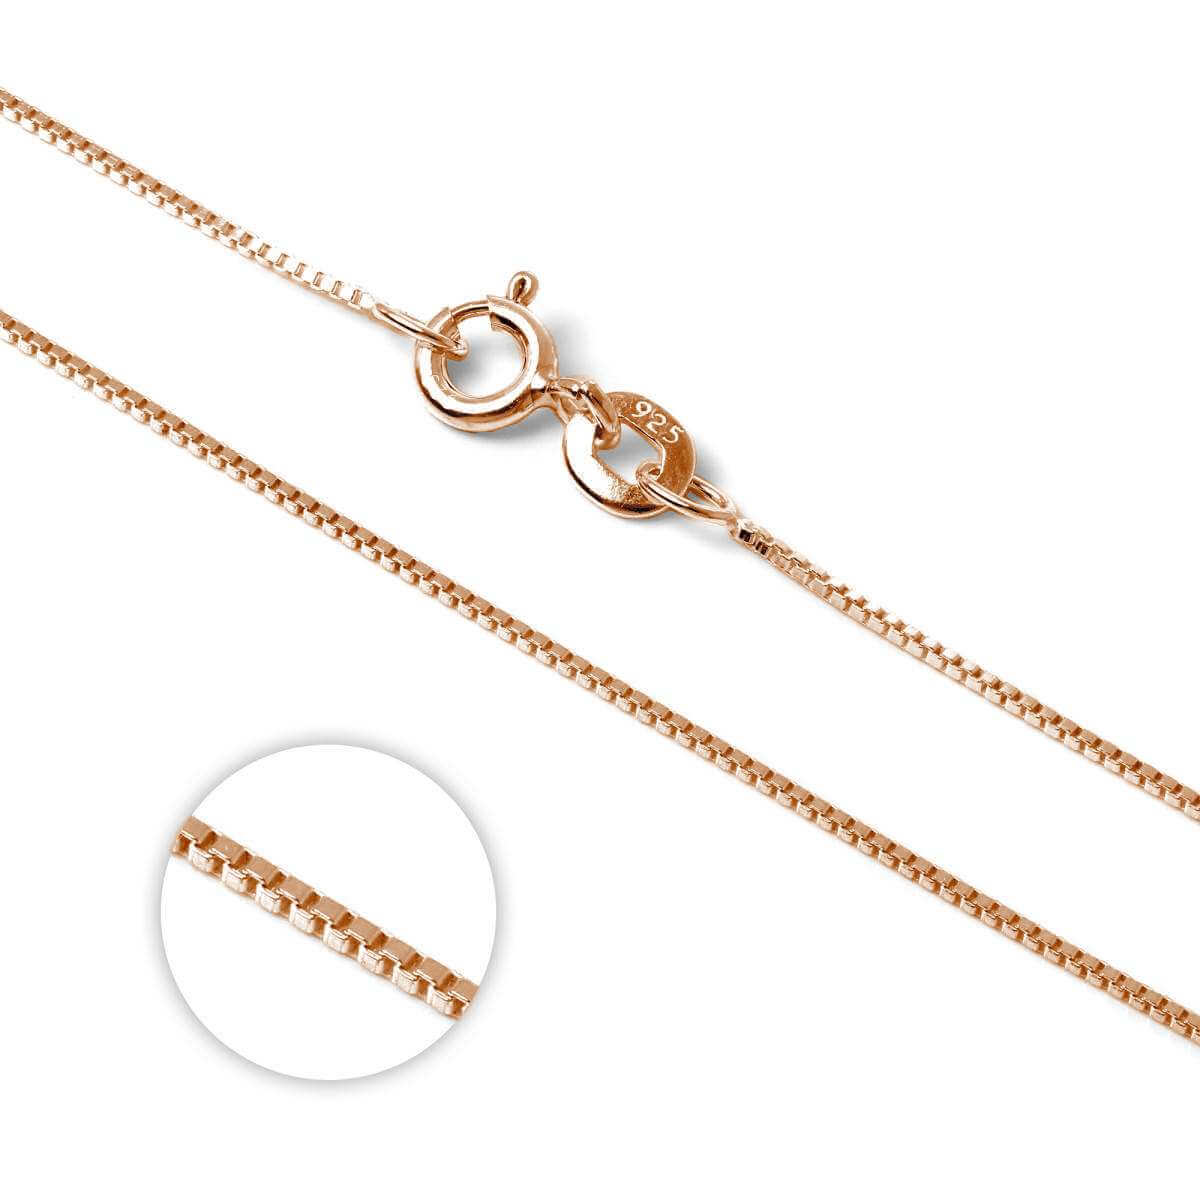 Rose Gold Plated Sterling Silver Box Chain 16 Inches